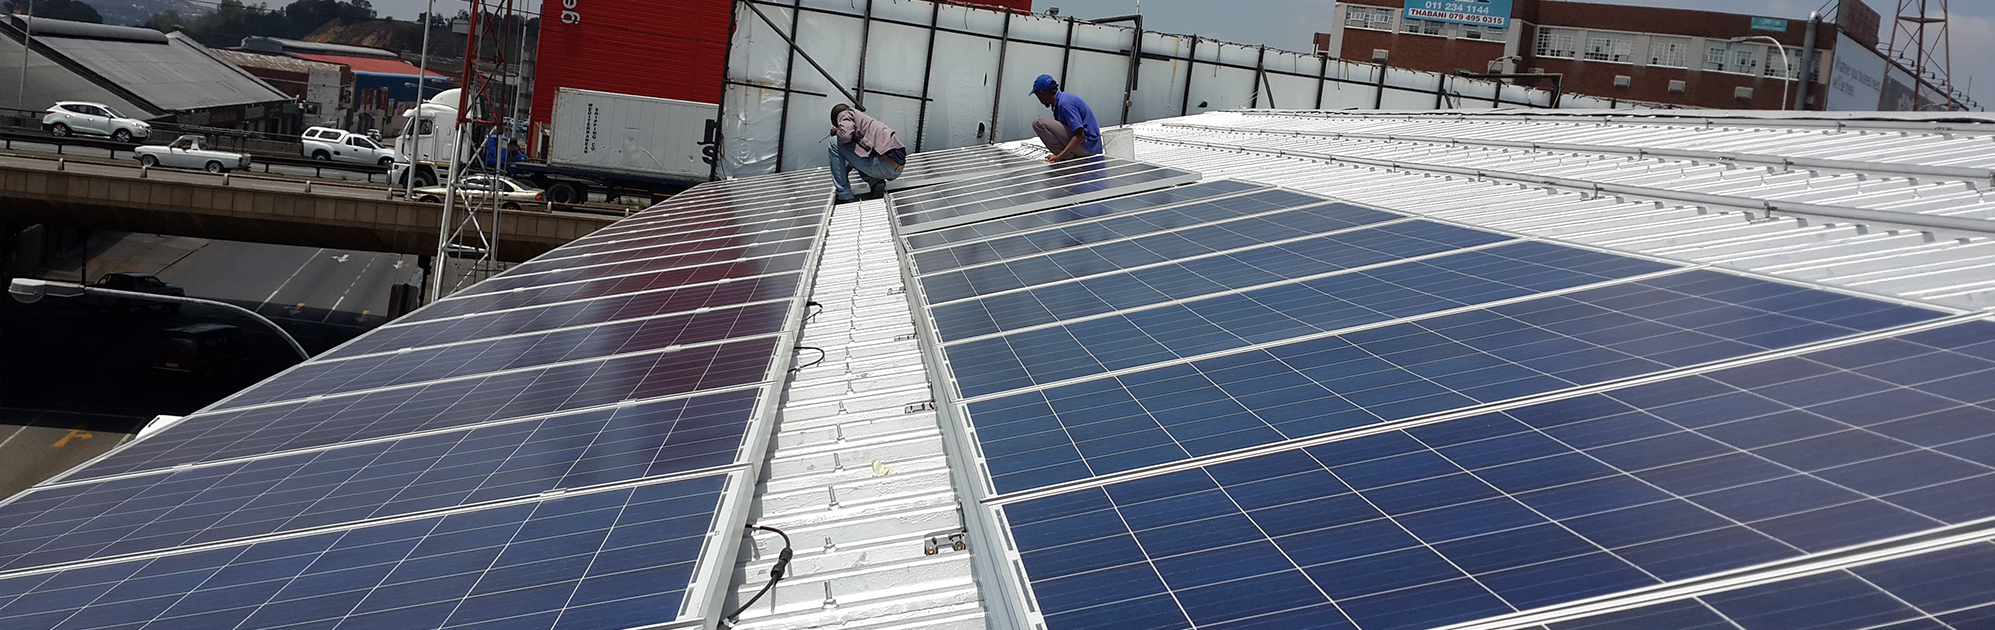 COMMERCIAL SOLAR POWER PHOTOVOLTAIC SOLUTIONS Image